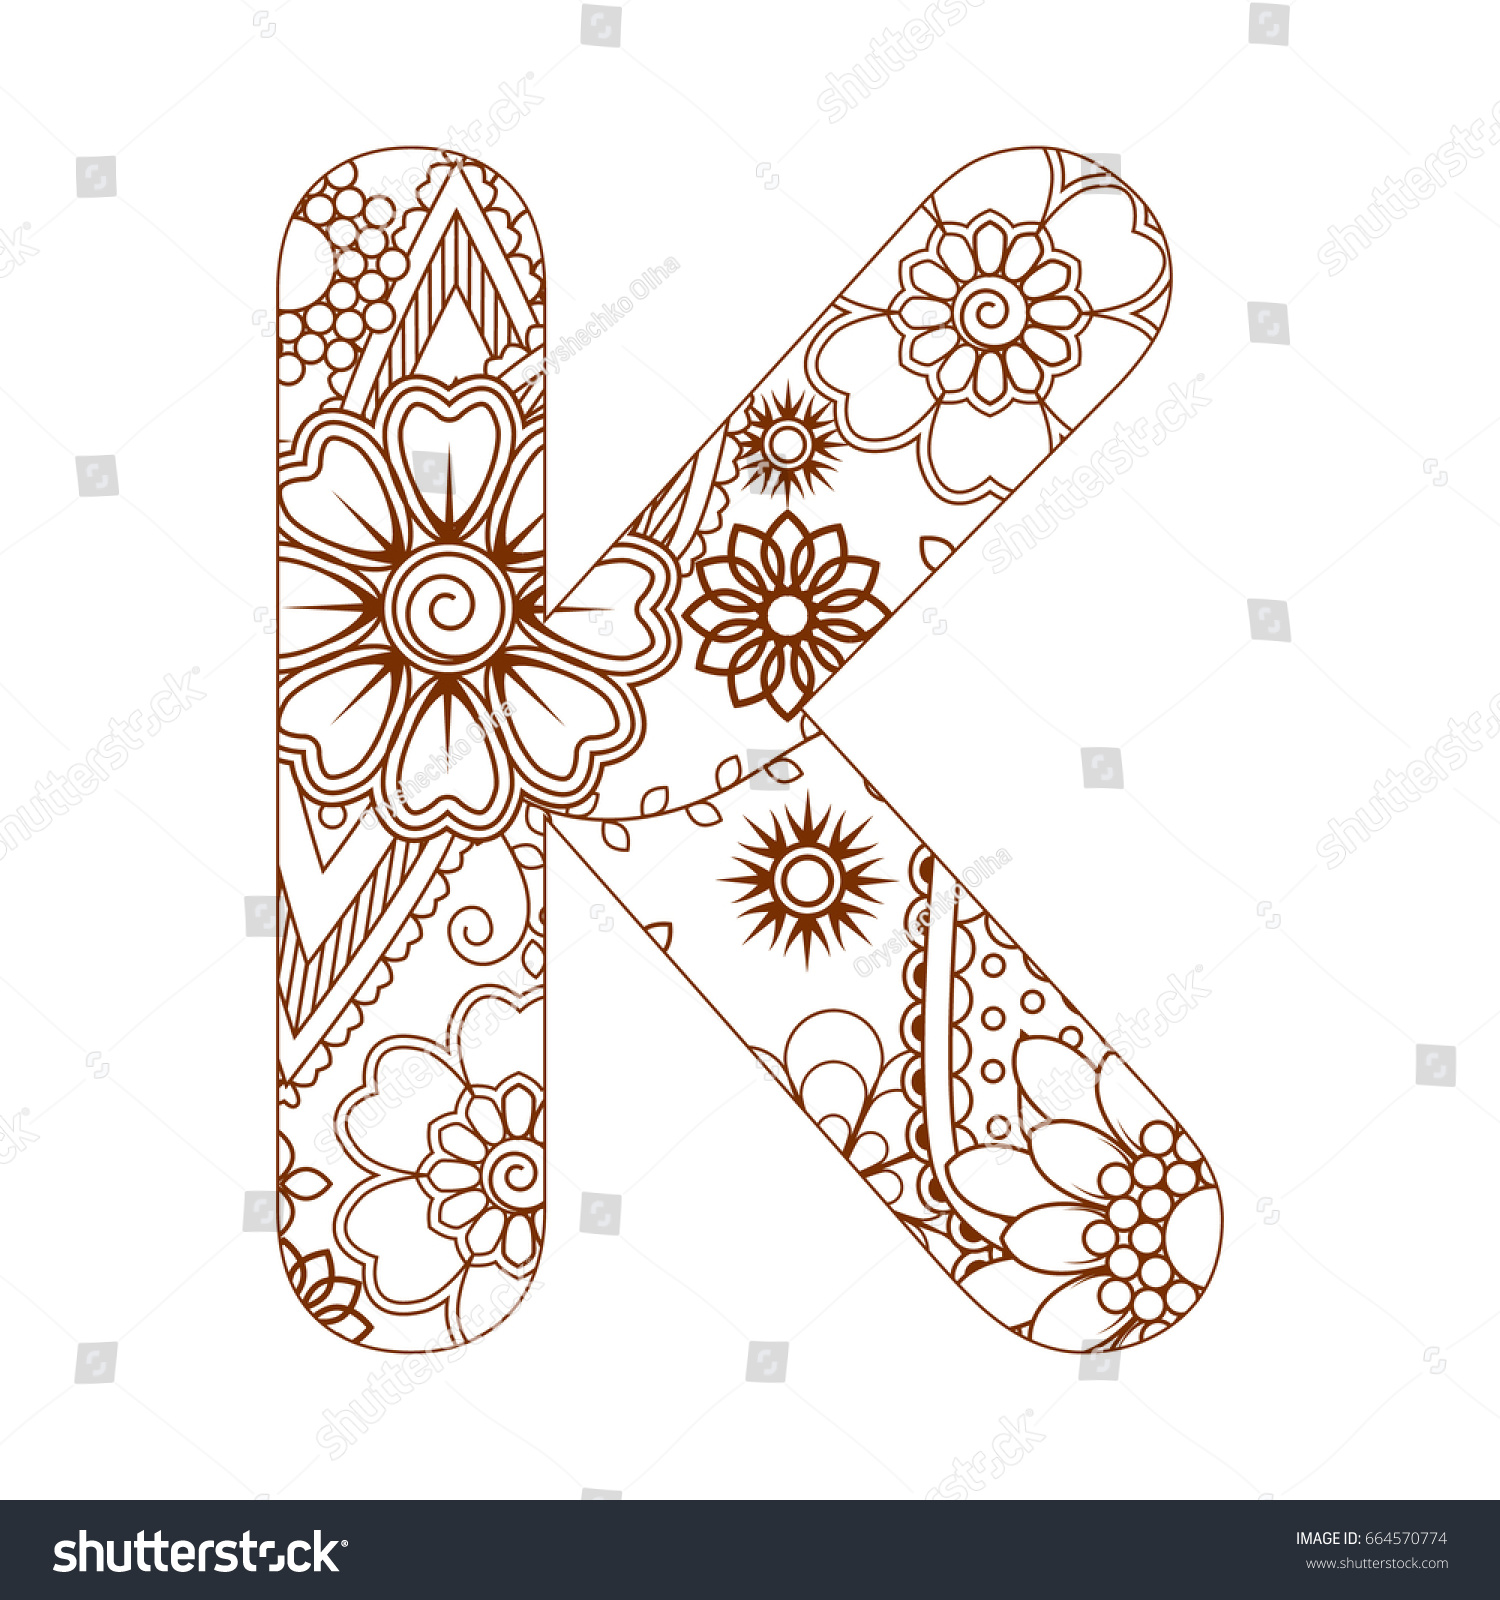 Adult Coloring Page Letter K Alphabet Stock Vector (Royalty Free ...